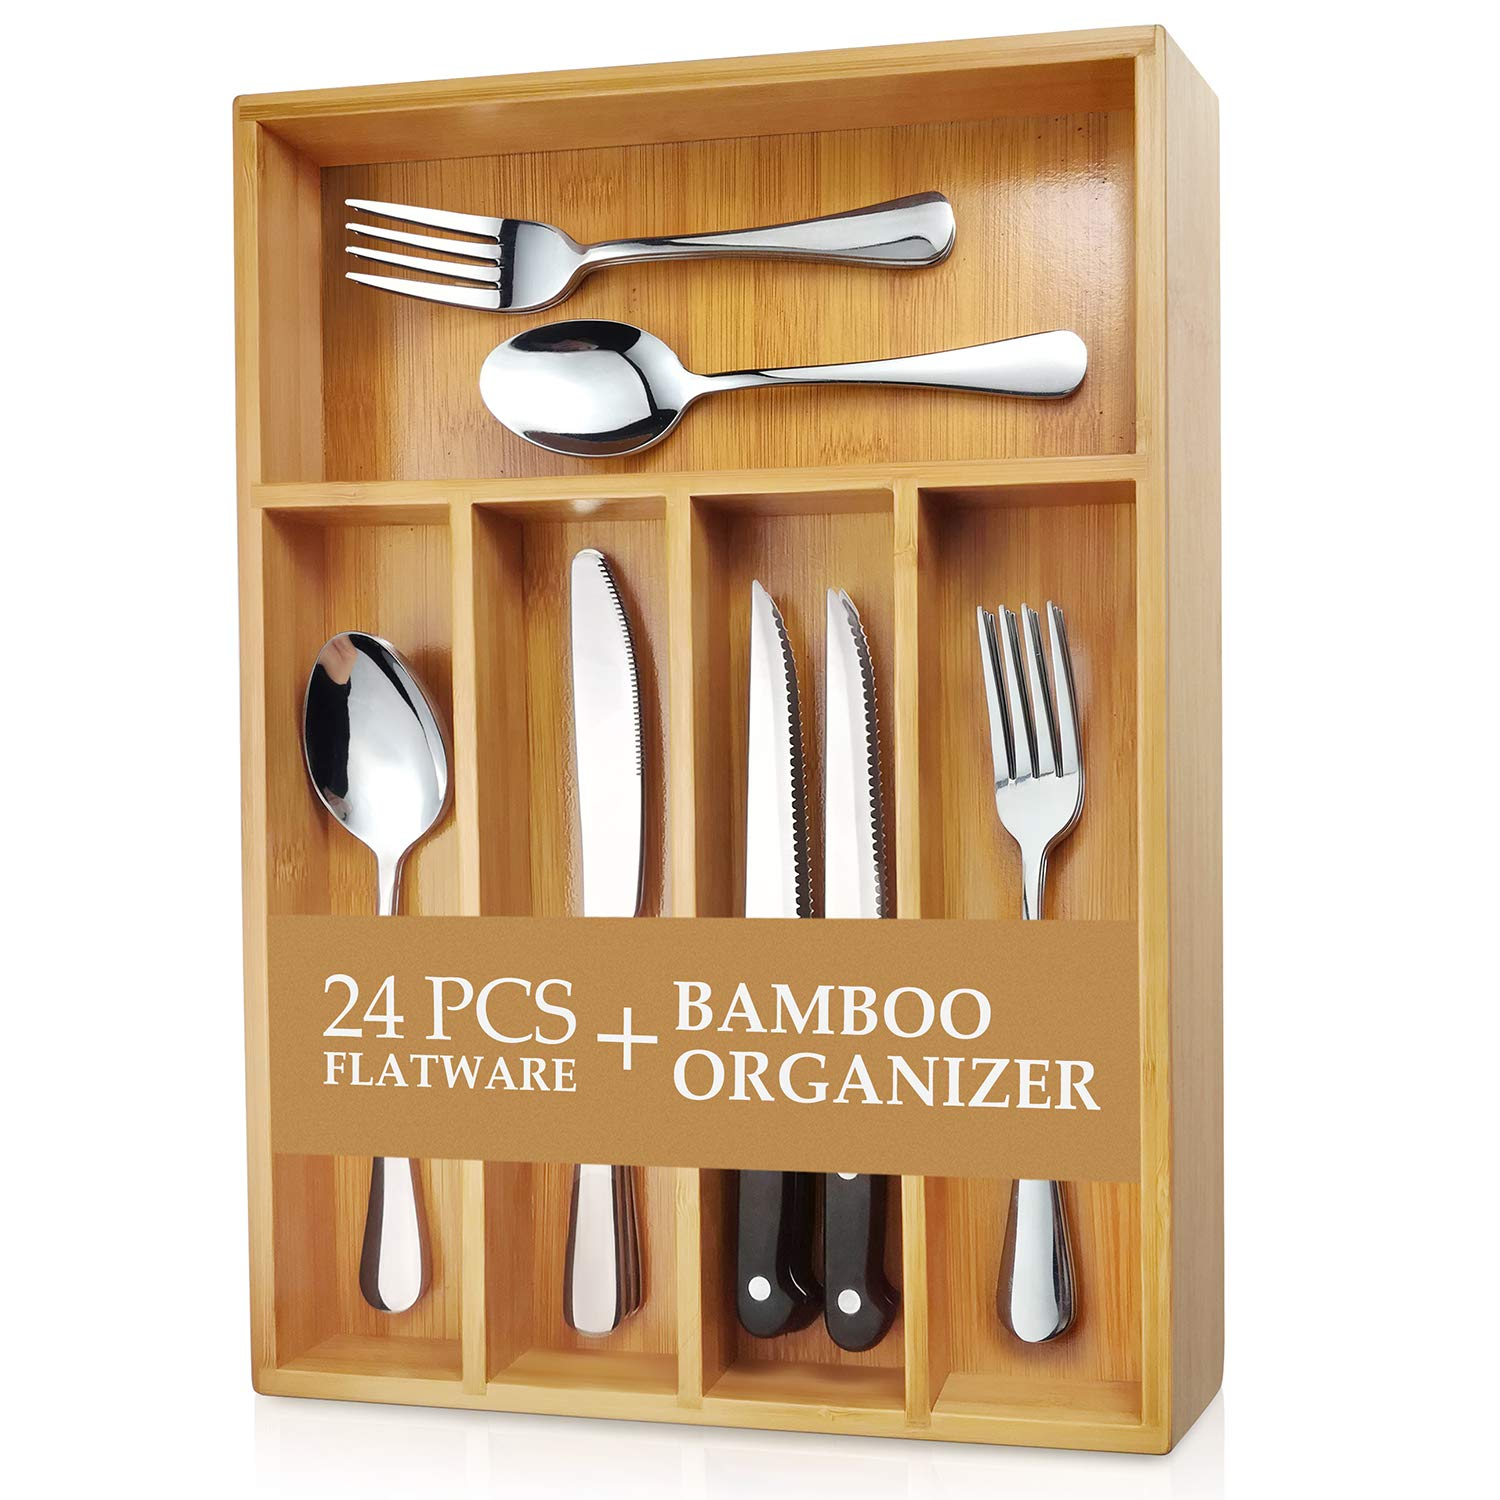 Teivio 24-Piece Silverware Set, Flatware Set Mirror Polished, Dishwasher Safe Service for 4, Include Knife/Fork/Spoon with Bamboo 5-Compartment Silverware Drawer Organizer Box by Teivio